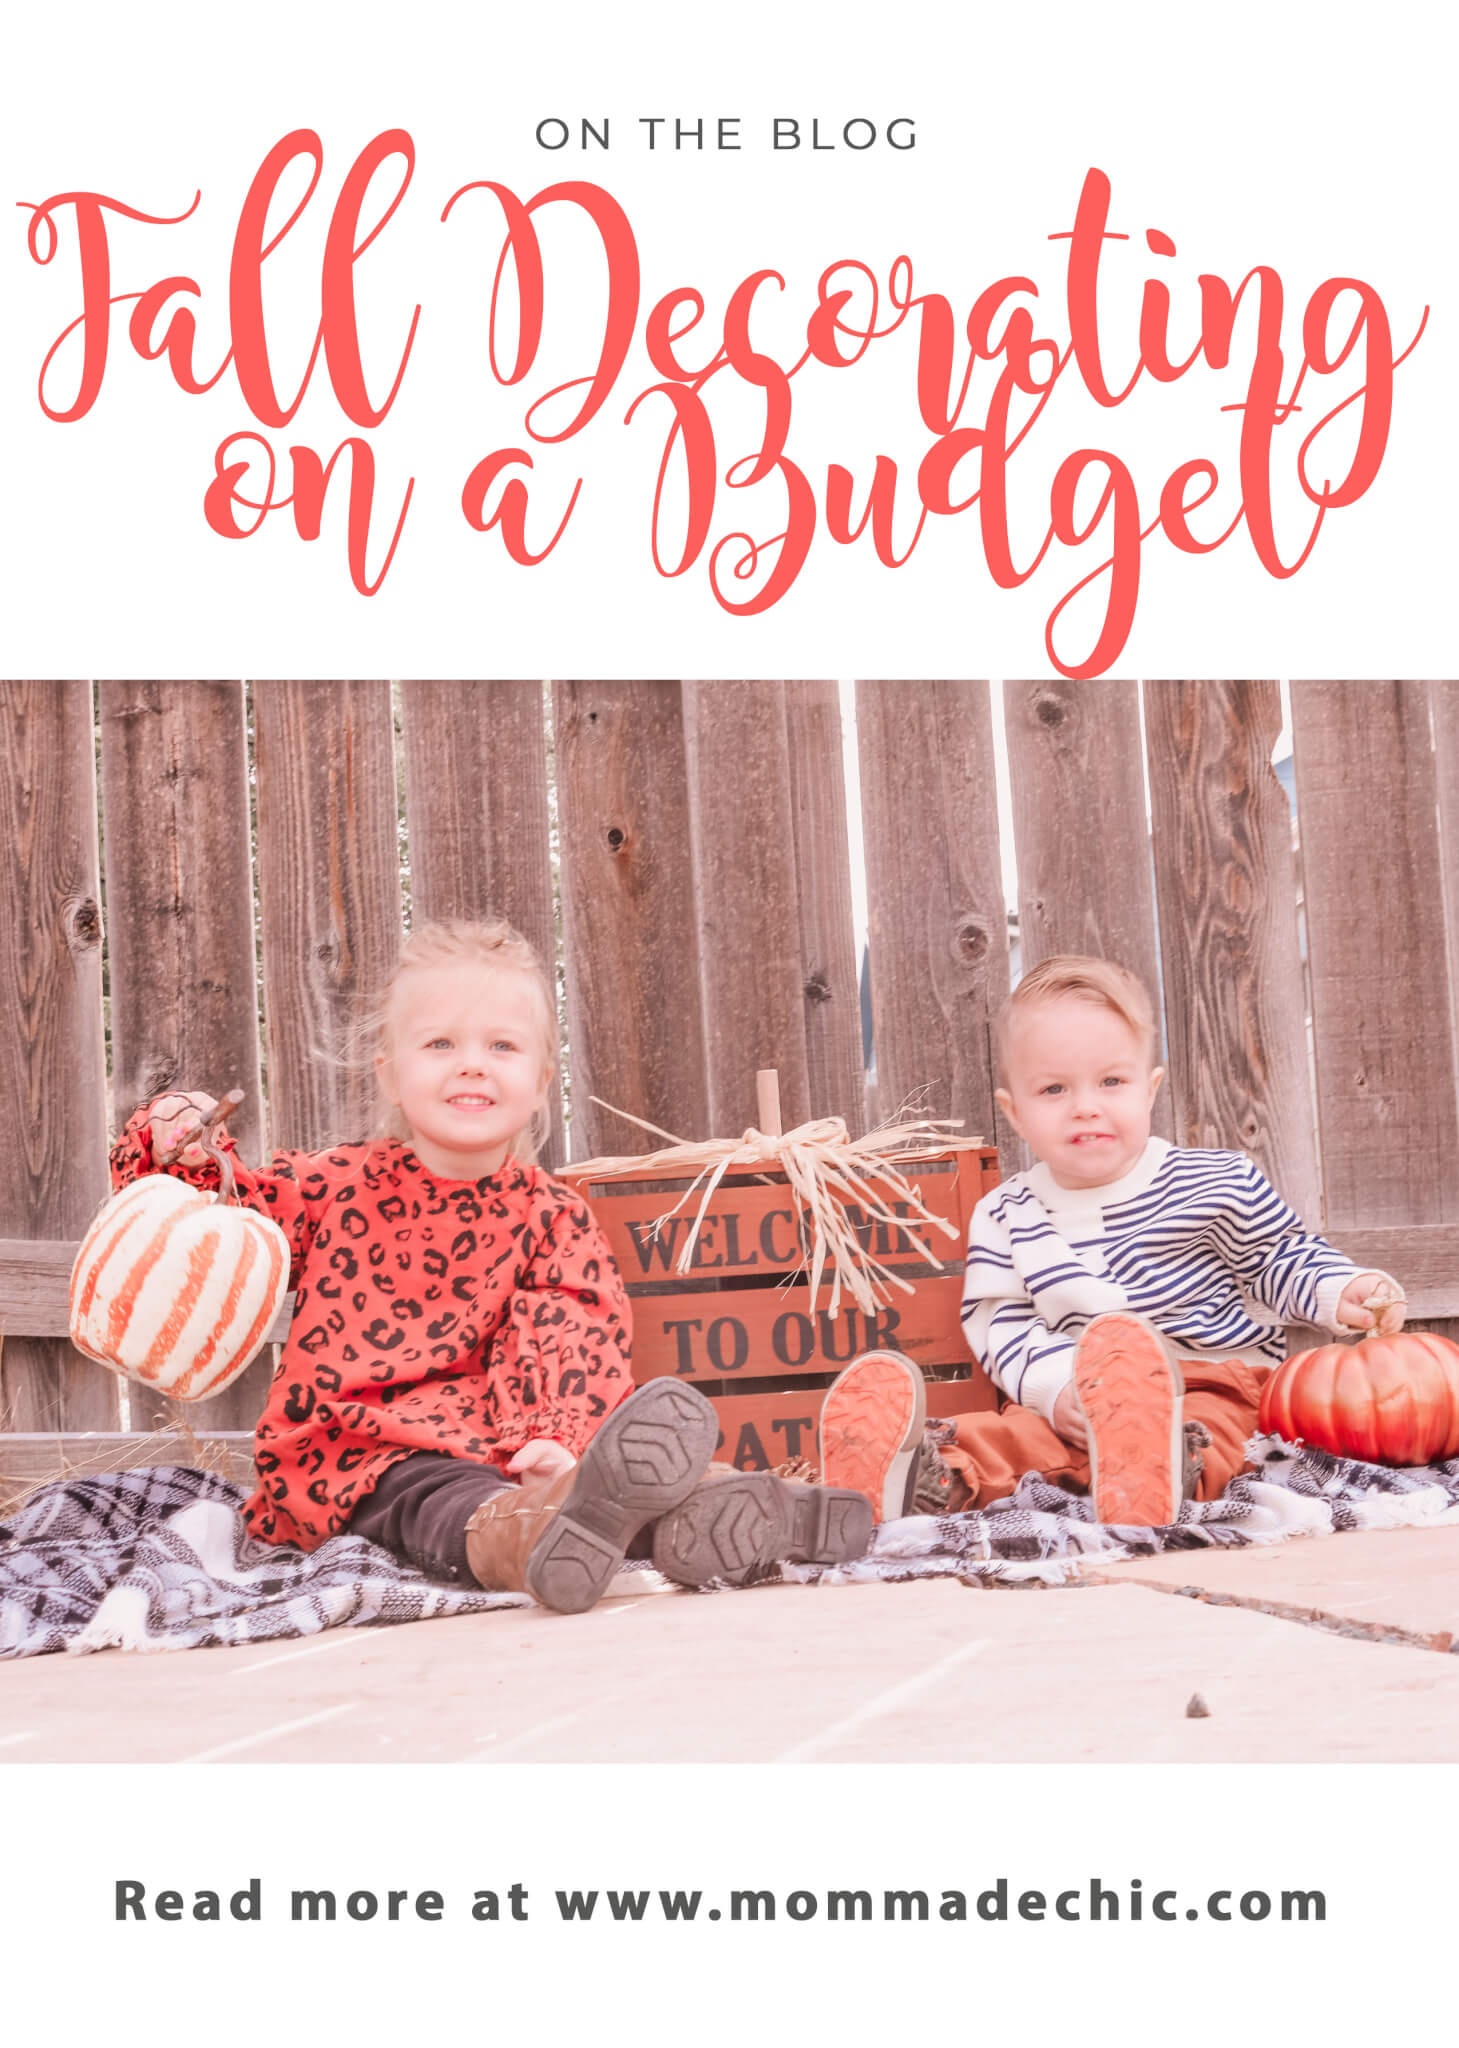 Decorating for Fall When You Have a Small Budget